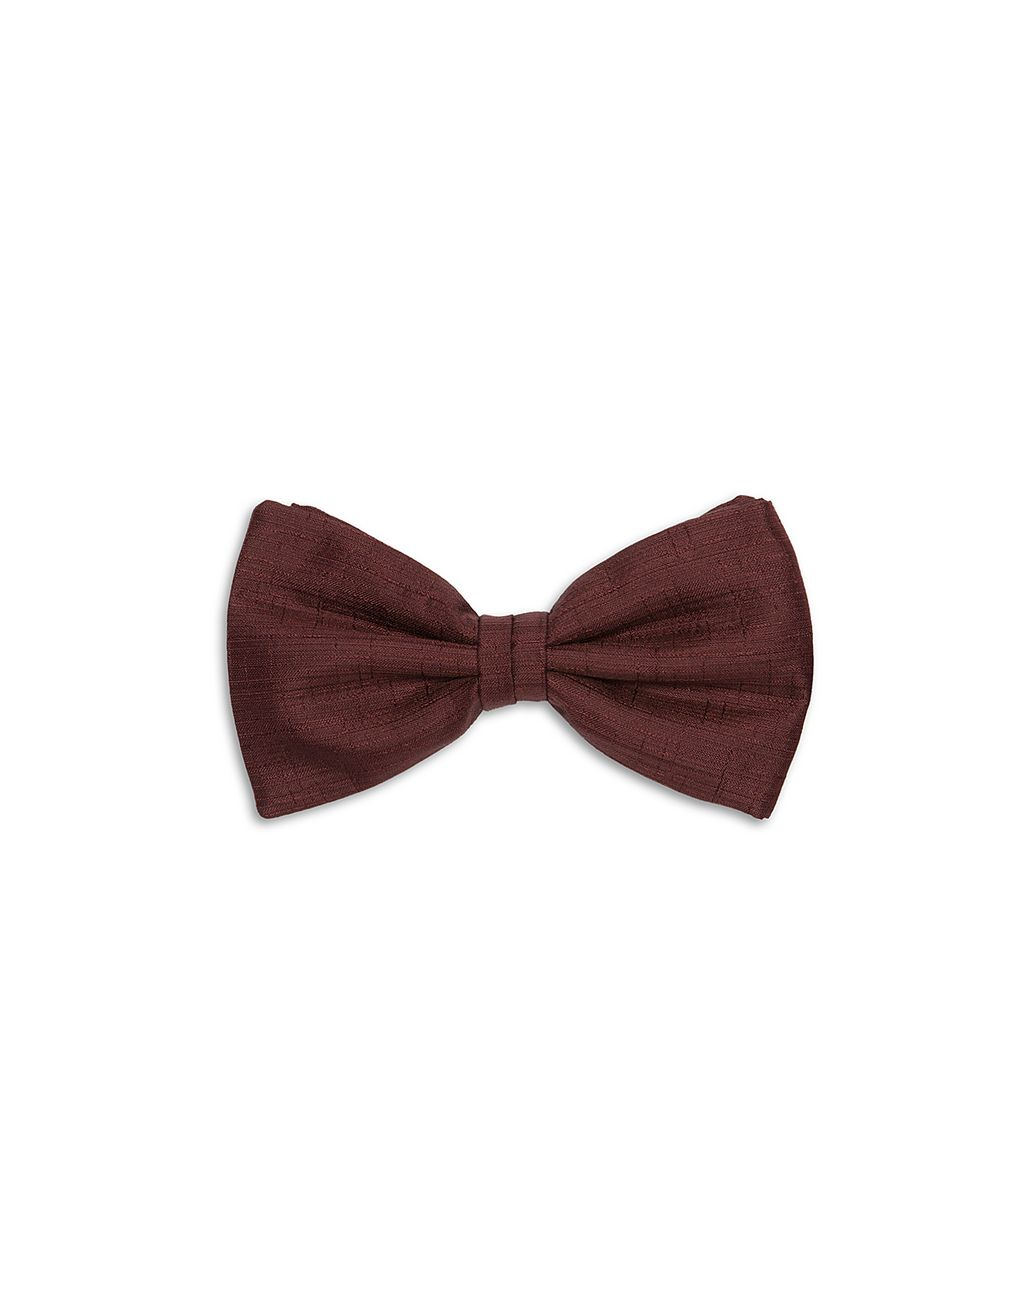 BRIONI Burgundy Bow Tie Bow Ties & Cummerbunds Man f